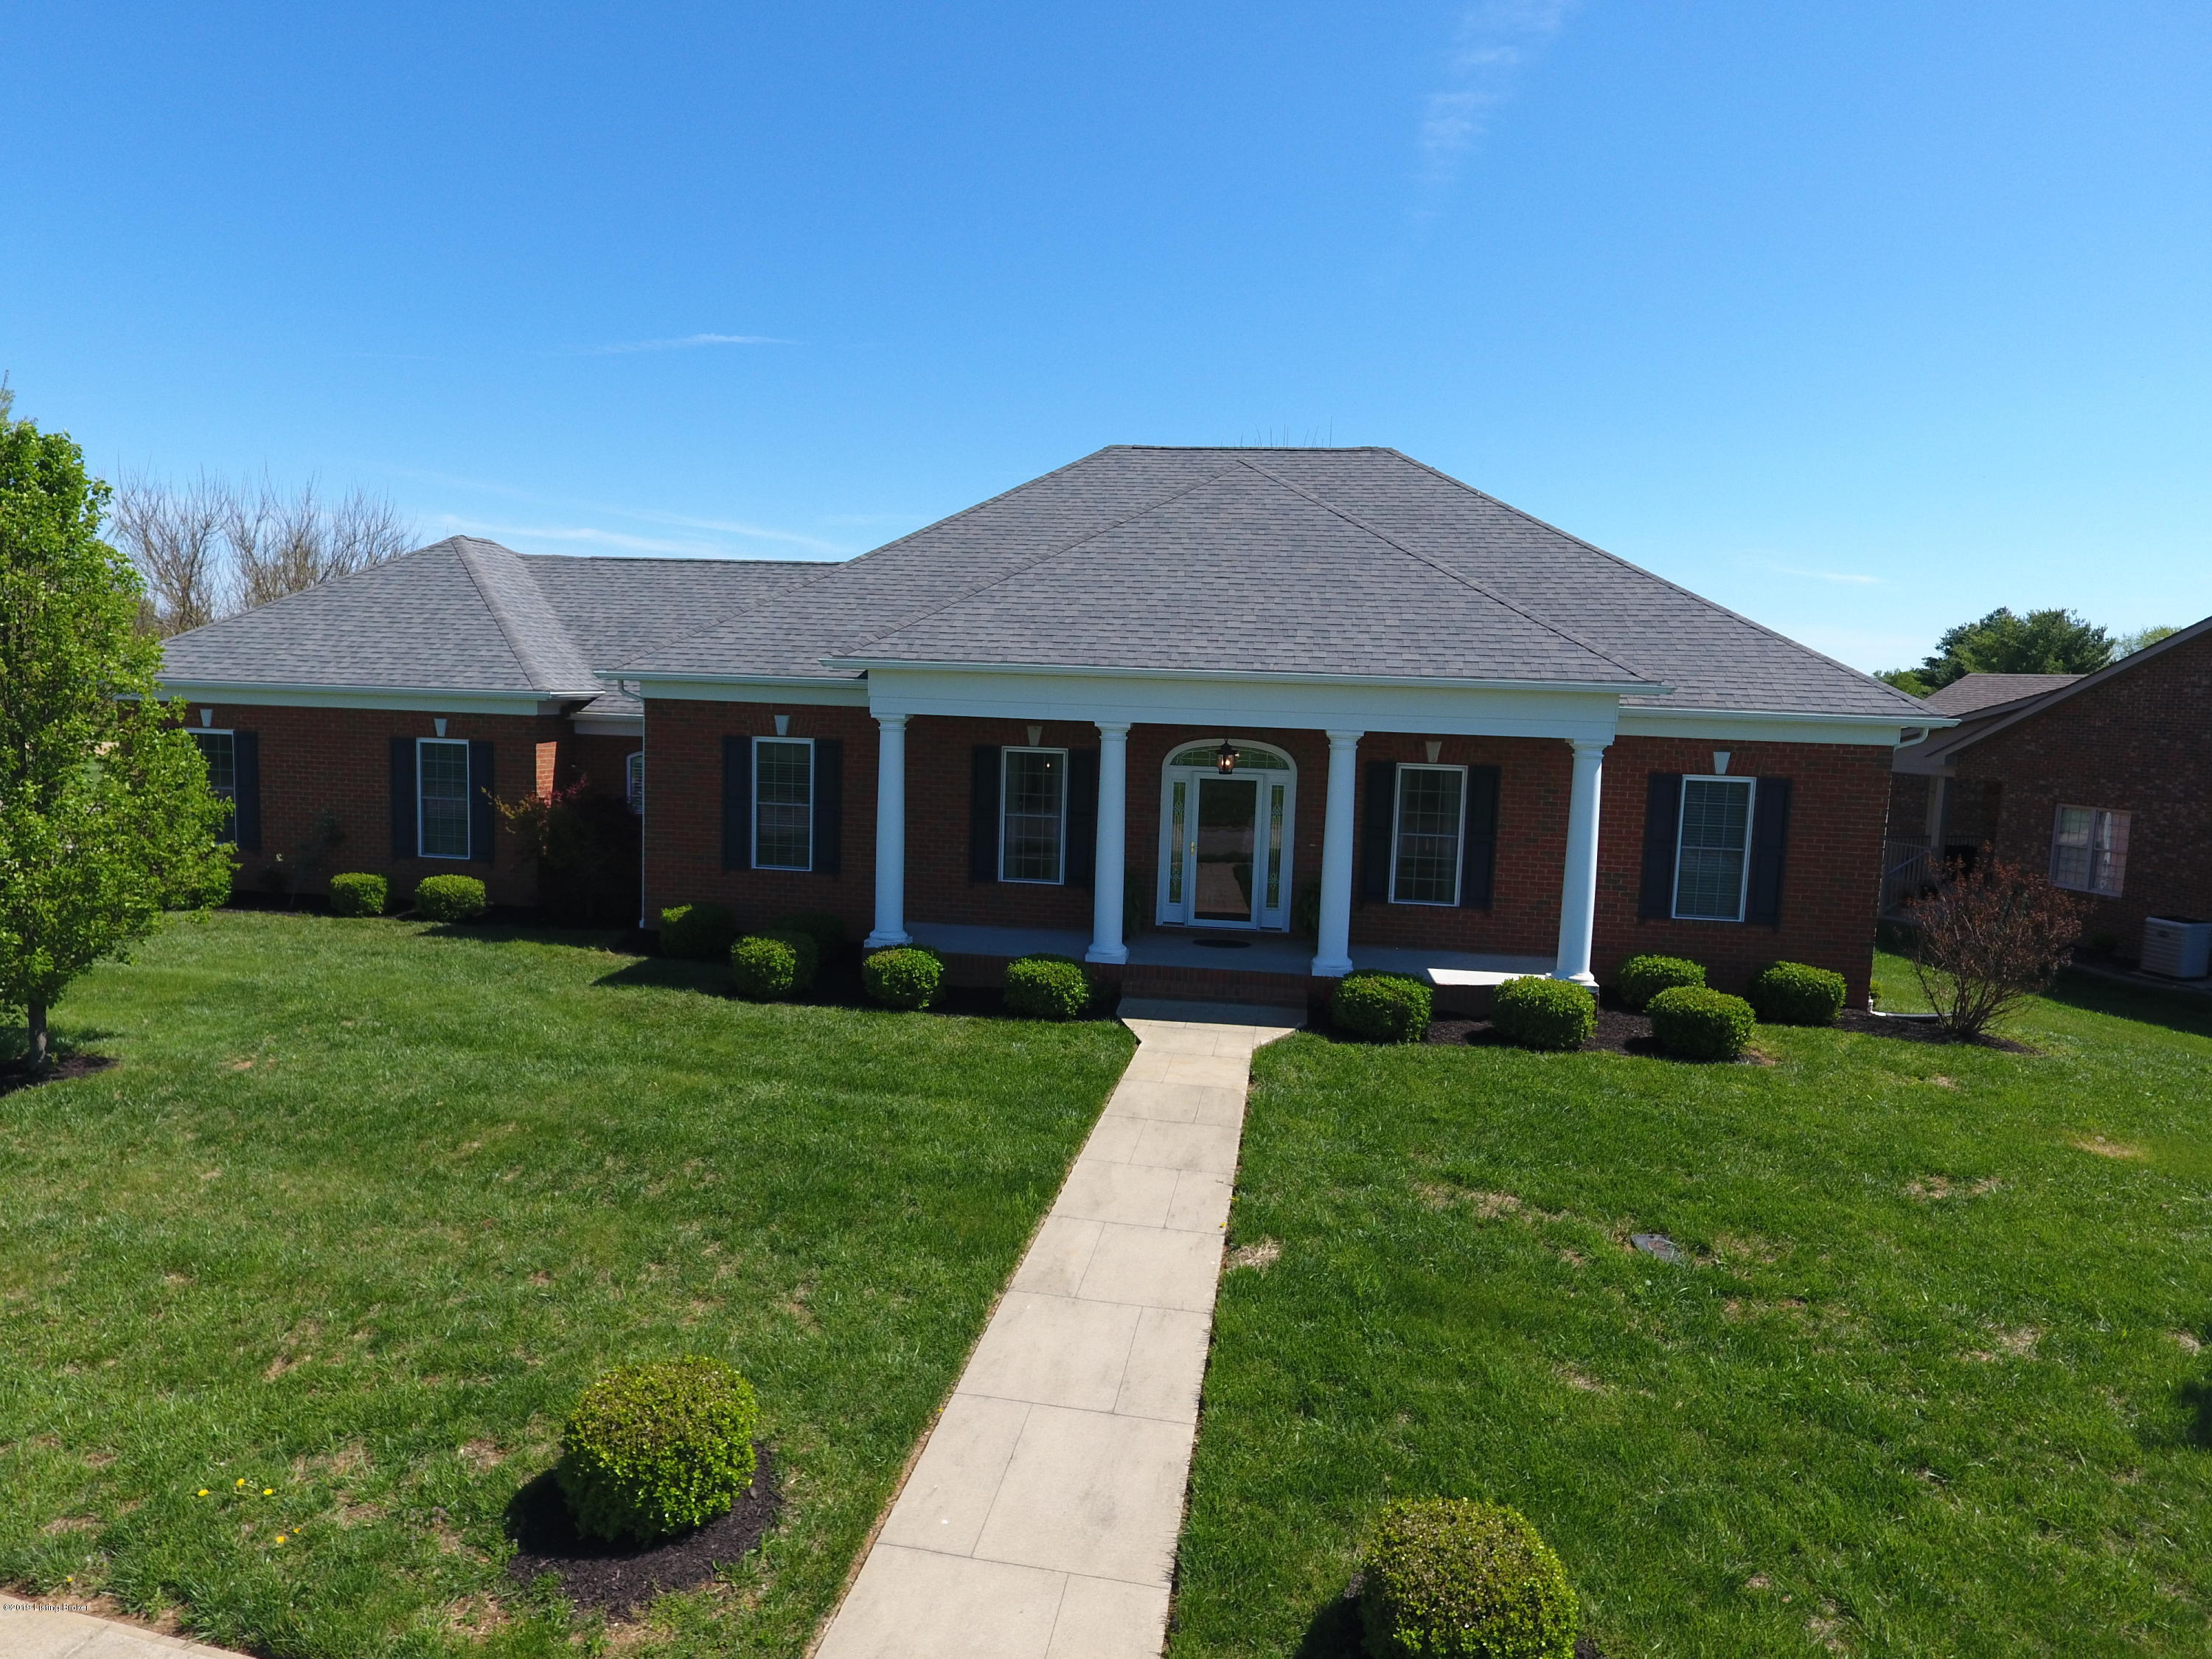 141 Remington Dr, Bardstown, Kentucky 40004, 3 Bedrooms Bedrooms, 11 Rooms Rooms,3 BathroomsBathrooms,Residential,For Sale,Remington,1529529